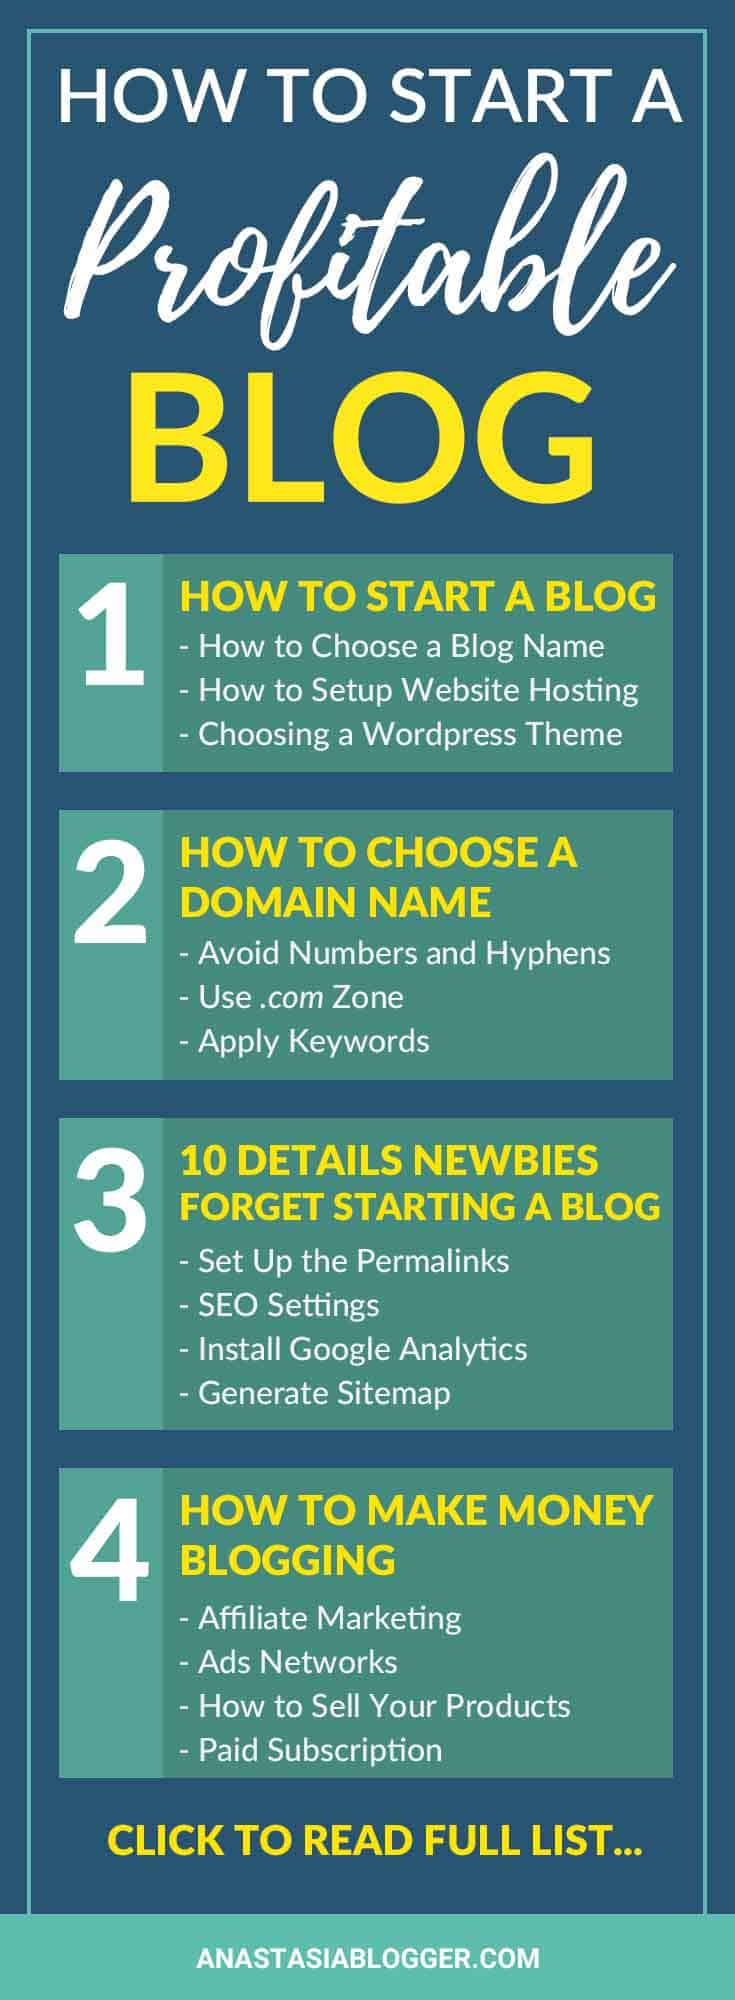 How to Start a Blog for Beginners – a series on AnastasiaBlogger.com which will reveal the 10 mistakes most newbies make starting a blog, will teach you to register a domain name, to set up hosting for your blog, and many other essential things for a new blog!